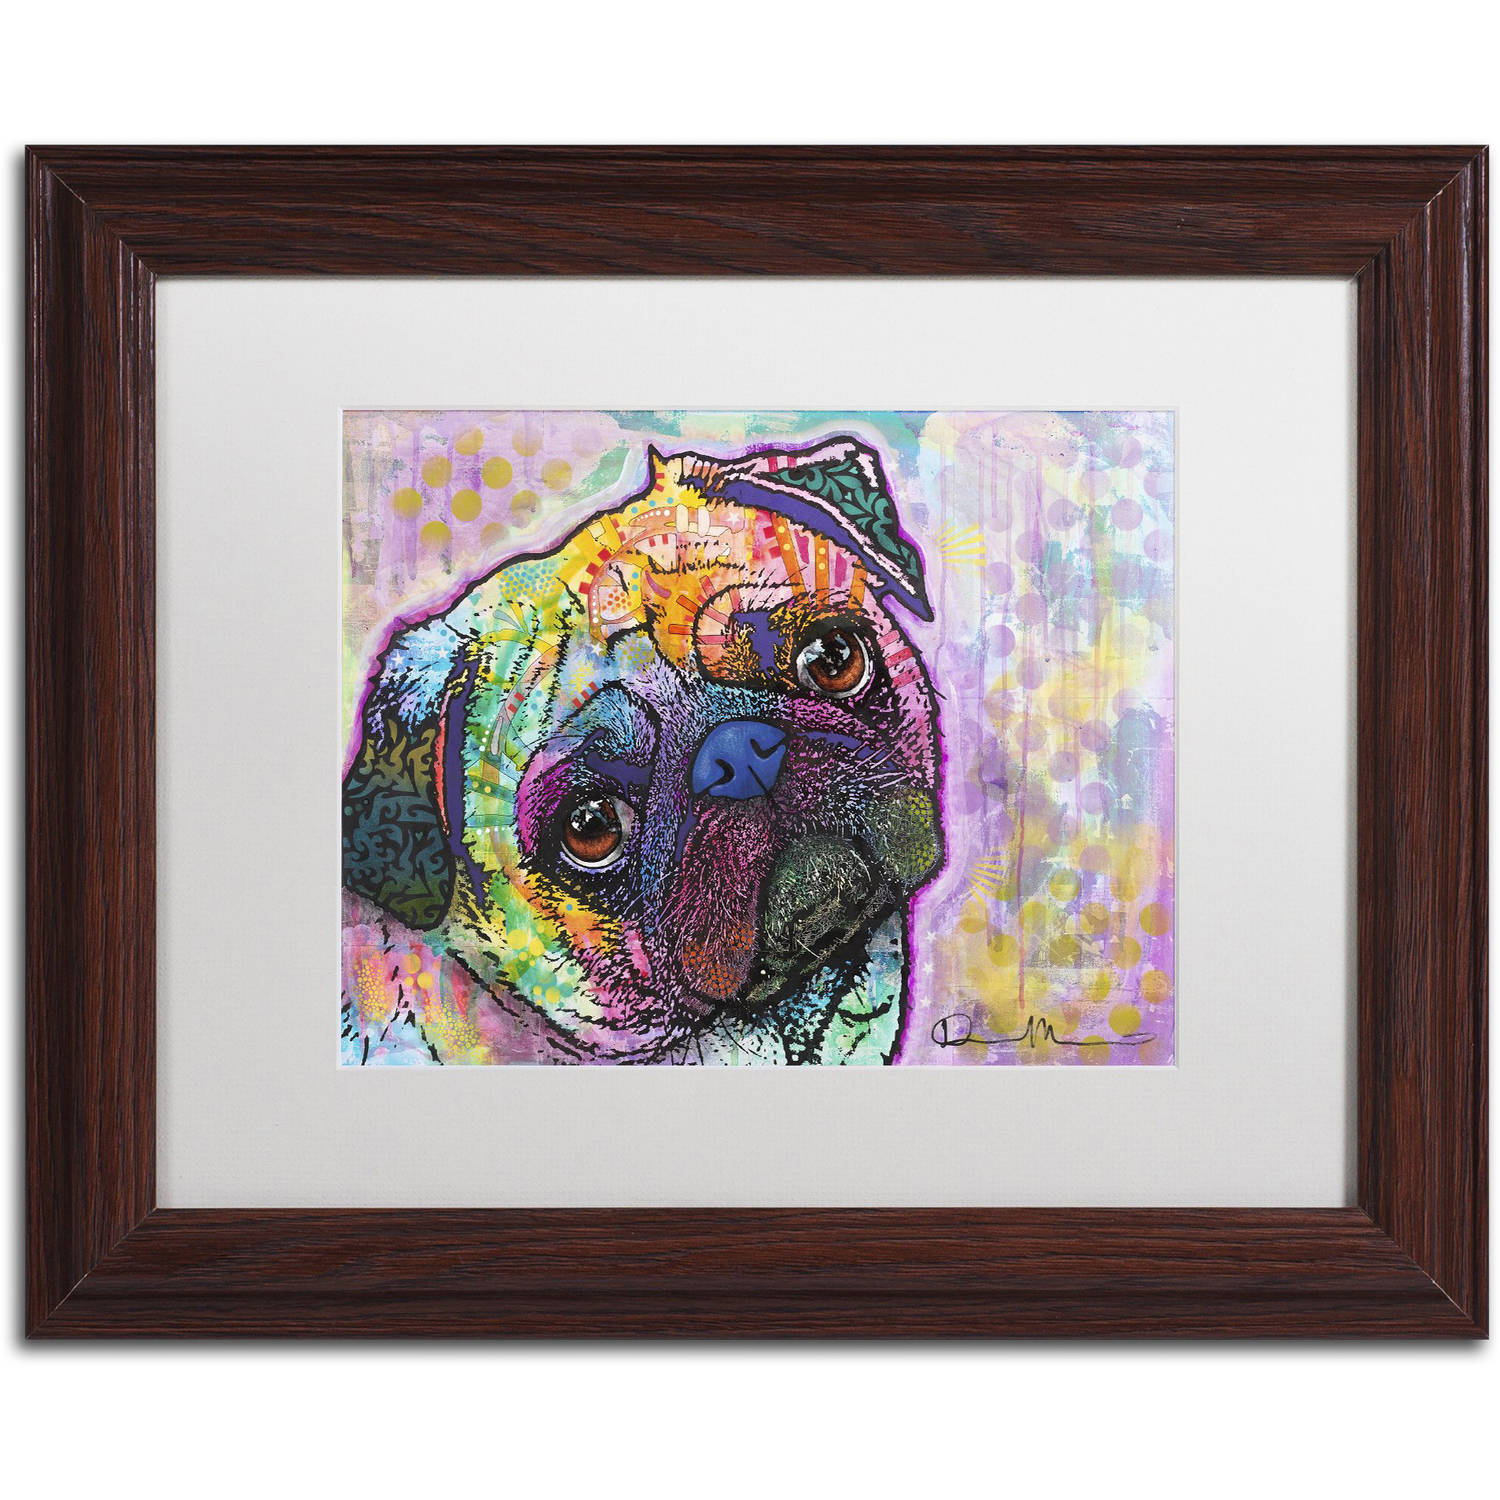 "Trademark Fine Art ""Pug Love"" Canvas Art by Dean Russo, White Matte, Wood Frame"